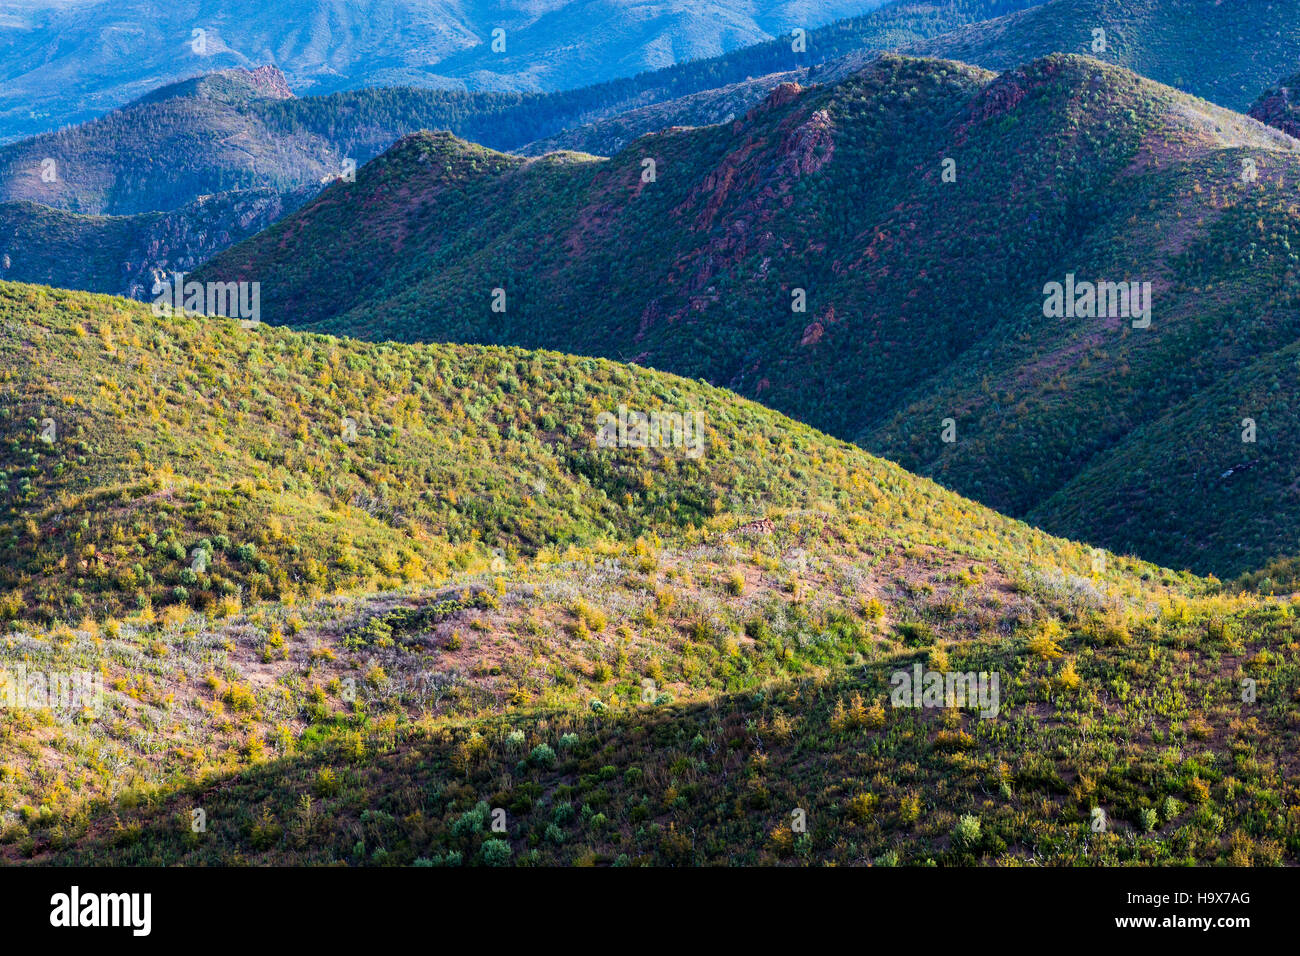 A young oak tree forest covering mountainsides in the Mazatzal Mountains. Tonto National Forest, Arizona - Stock Image